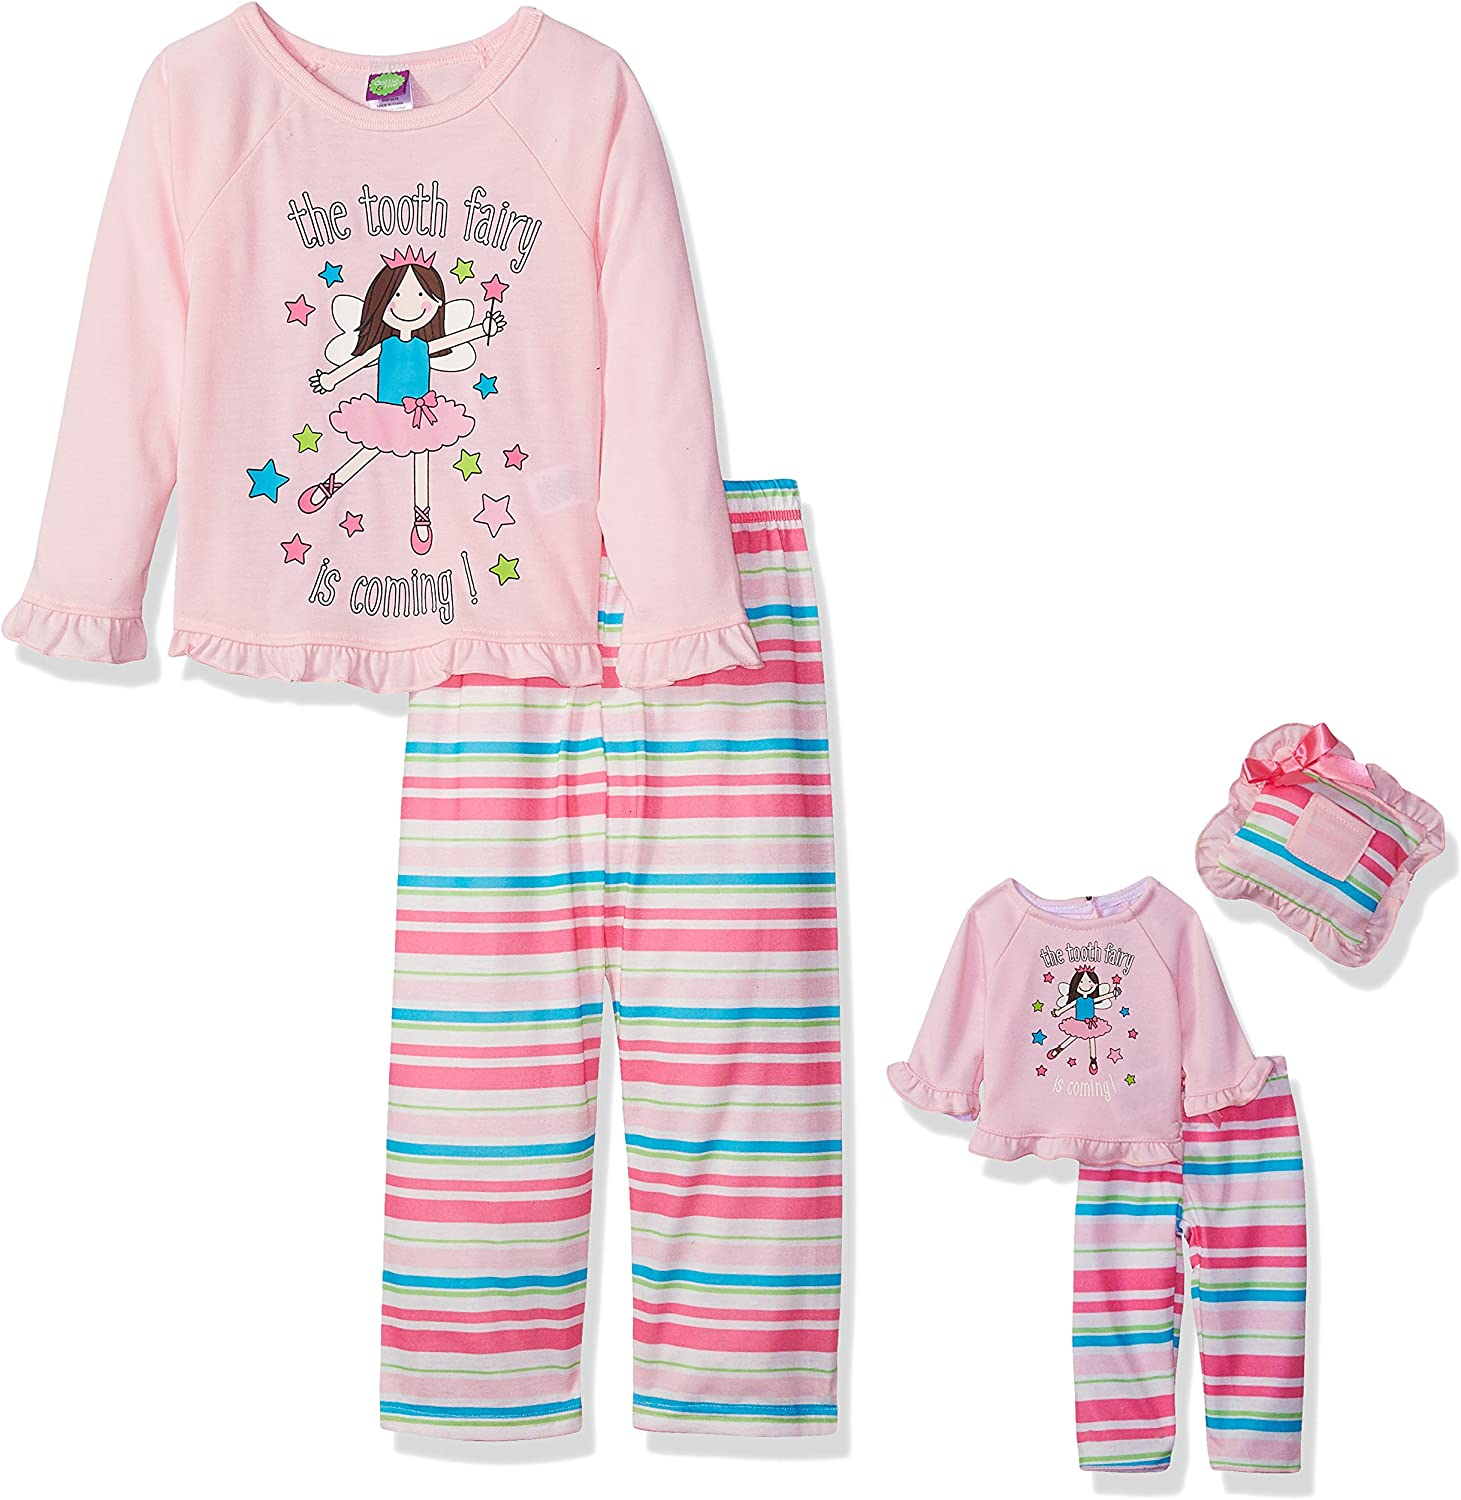 Dollie /& Me Girls Big Knit 3 Pc Sleep Set